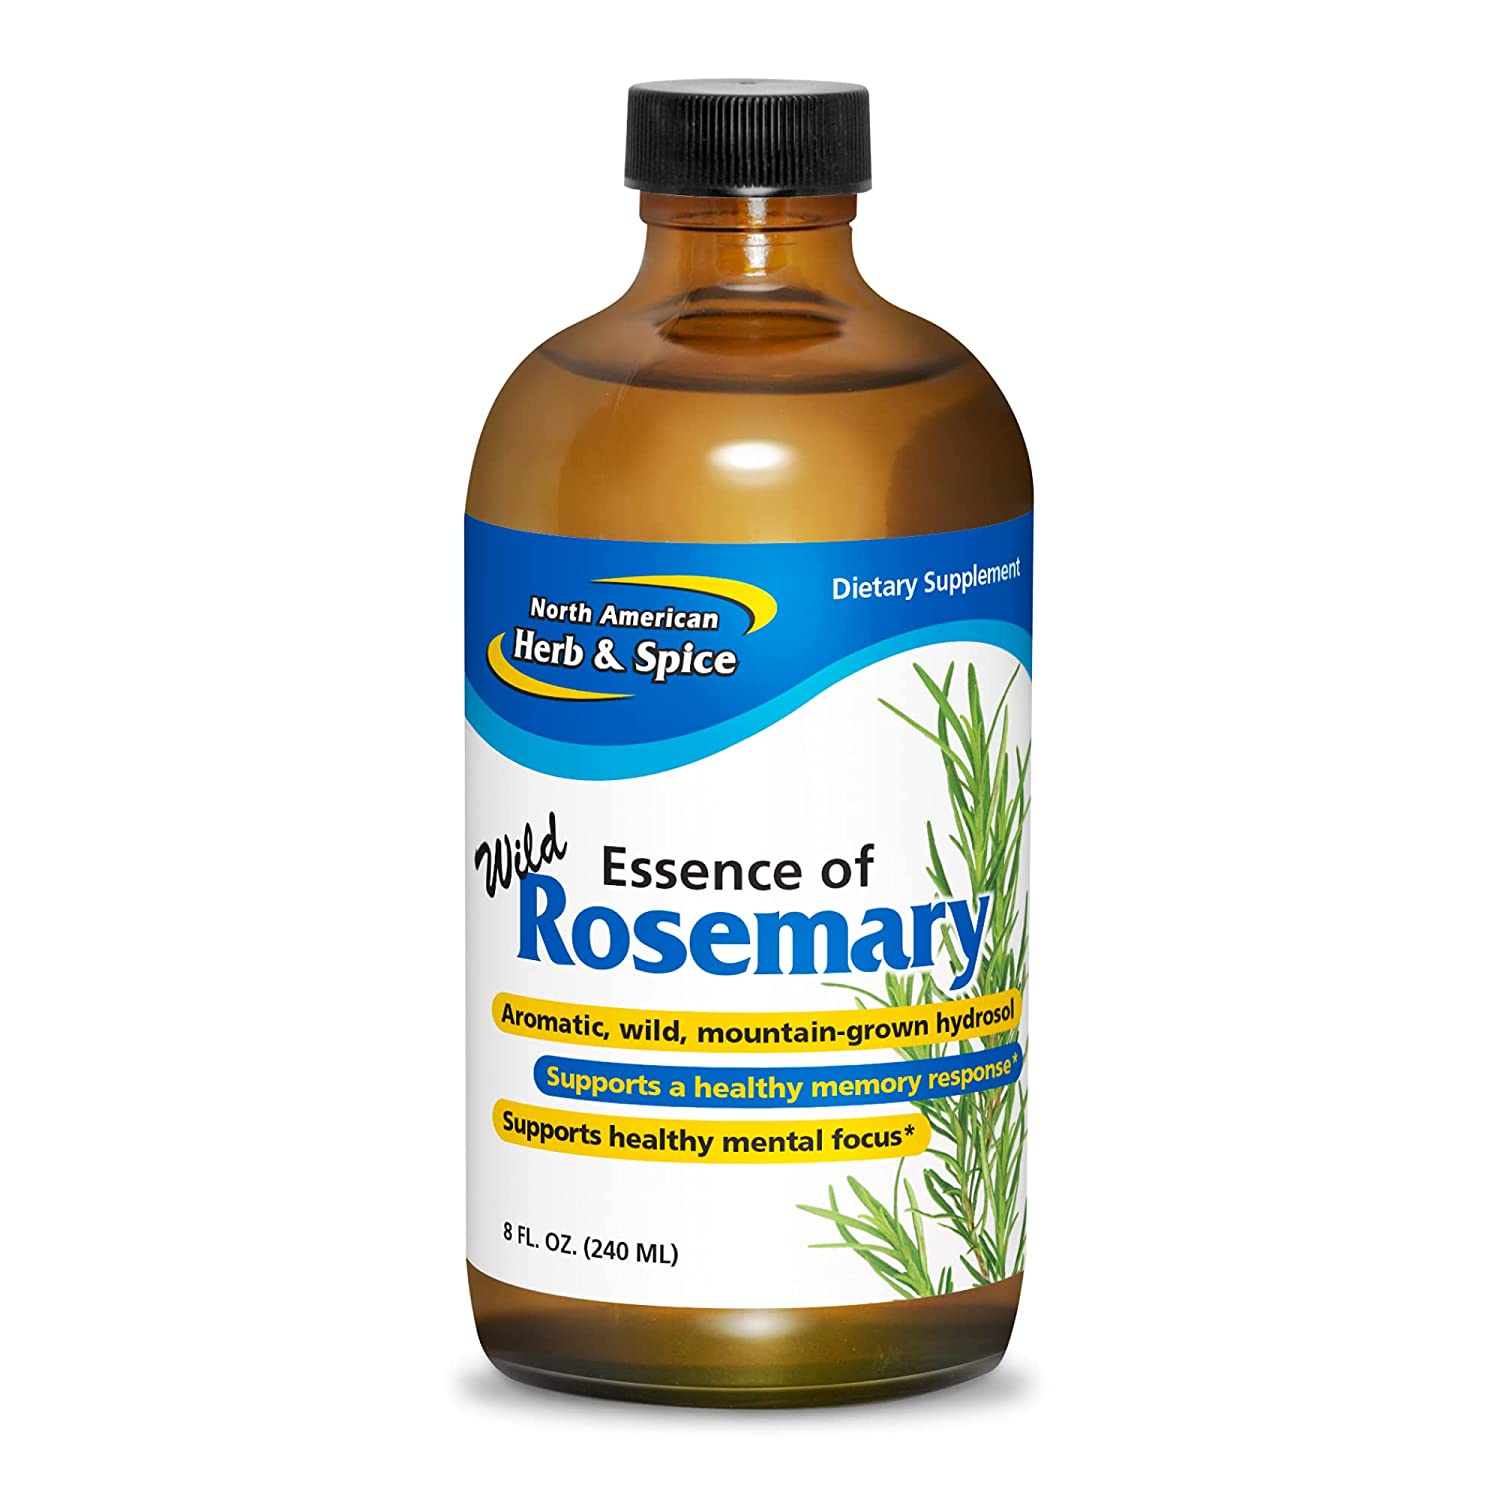 North American Herb Spice Essence of free shipping fl. Daily bargain sale Wild - Rosemary oz. 8